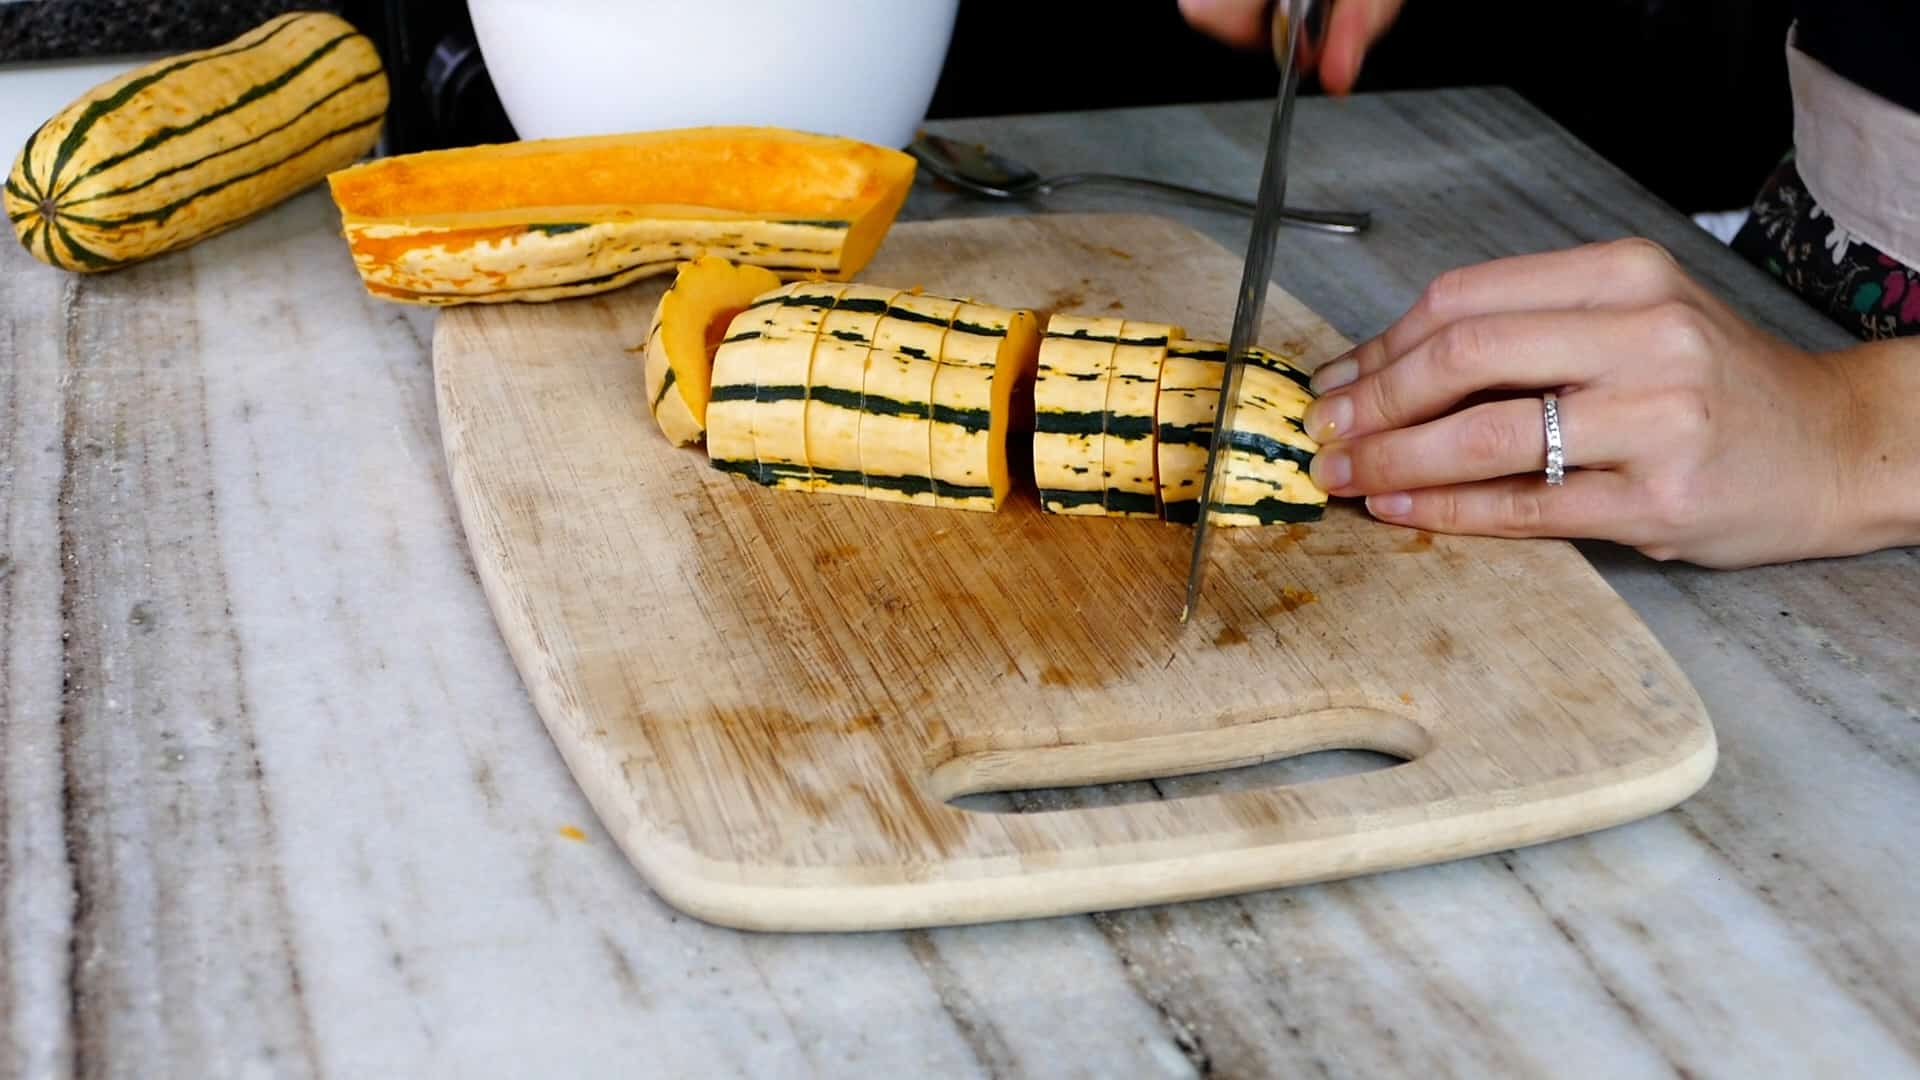 woman's hand cutting delicata squash into fries on a cutting board